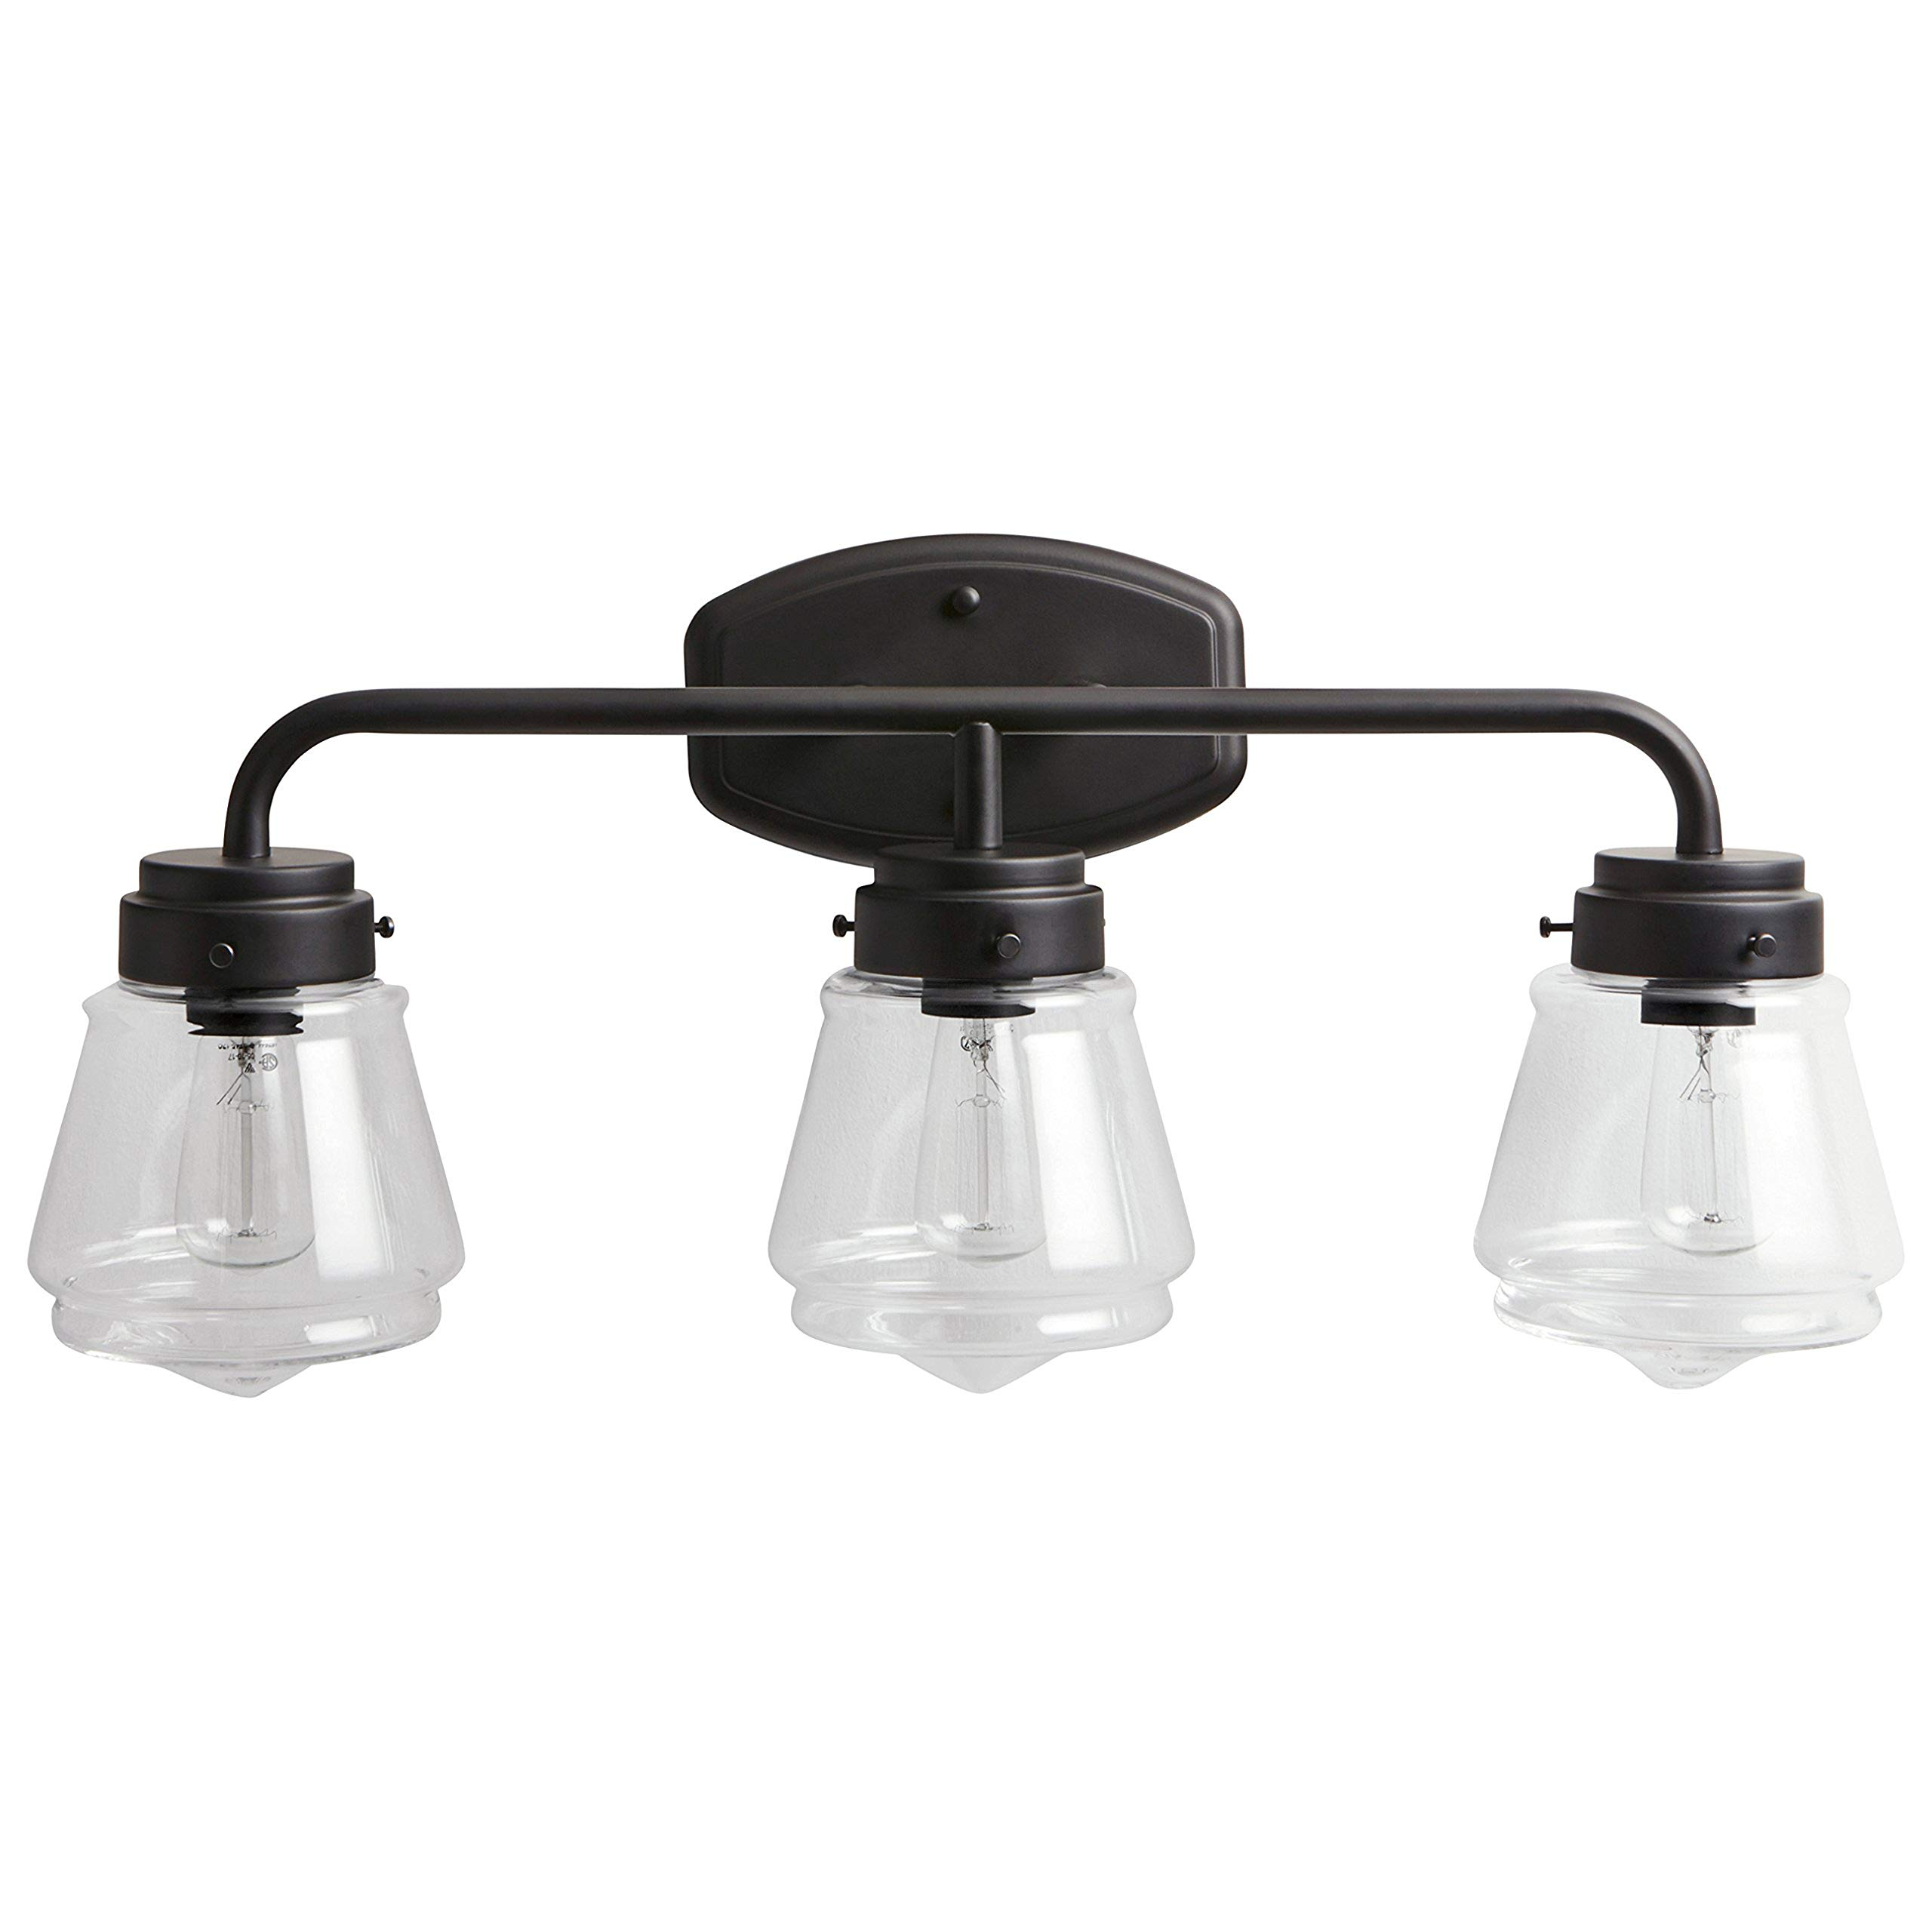 Stone & Beam Vintage 3-Light Vanity Fixture, 11.5''H, With Bulb, Matte Black with Glass Shade by Stone & Beam (Image #1)